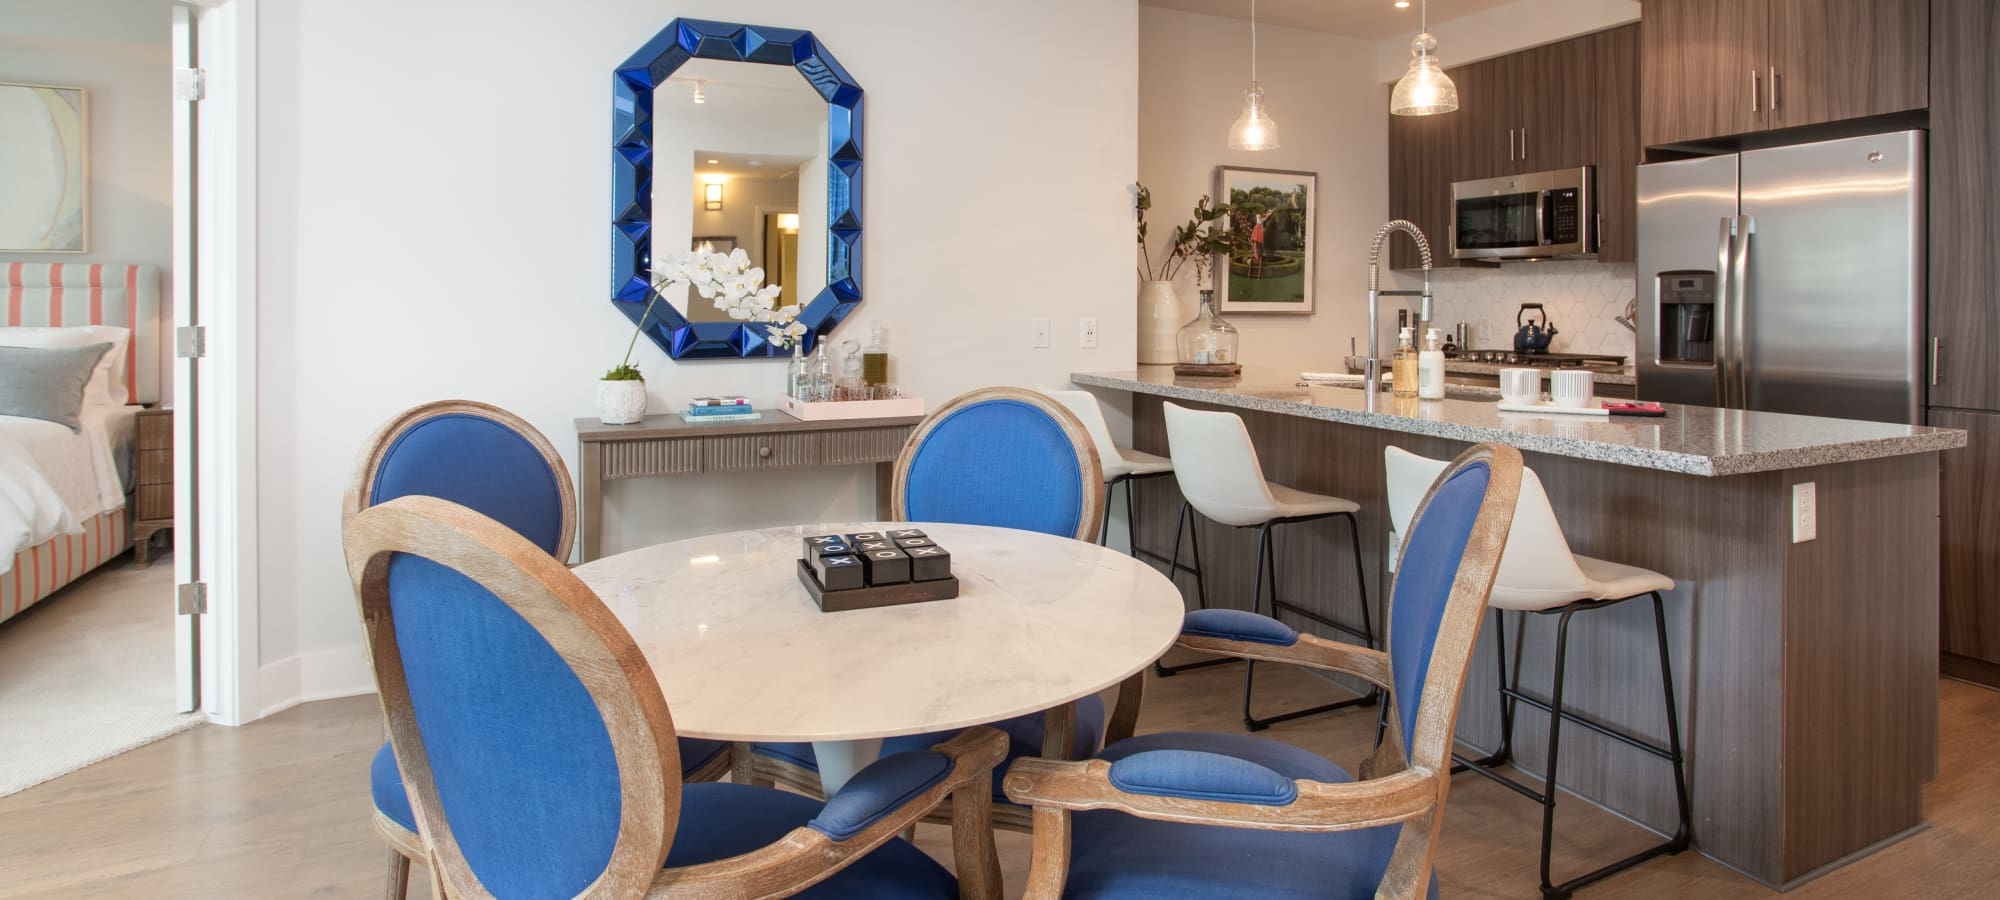 Beautiful contemporary dining table at Lakeside Drive Apartments in Tempe, Arizona